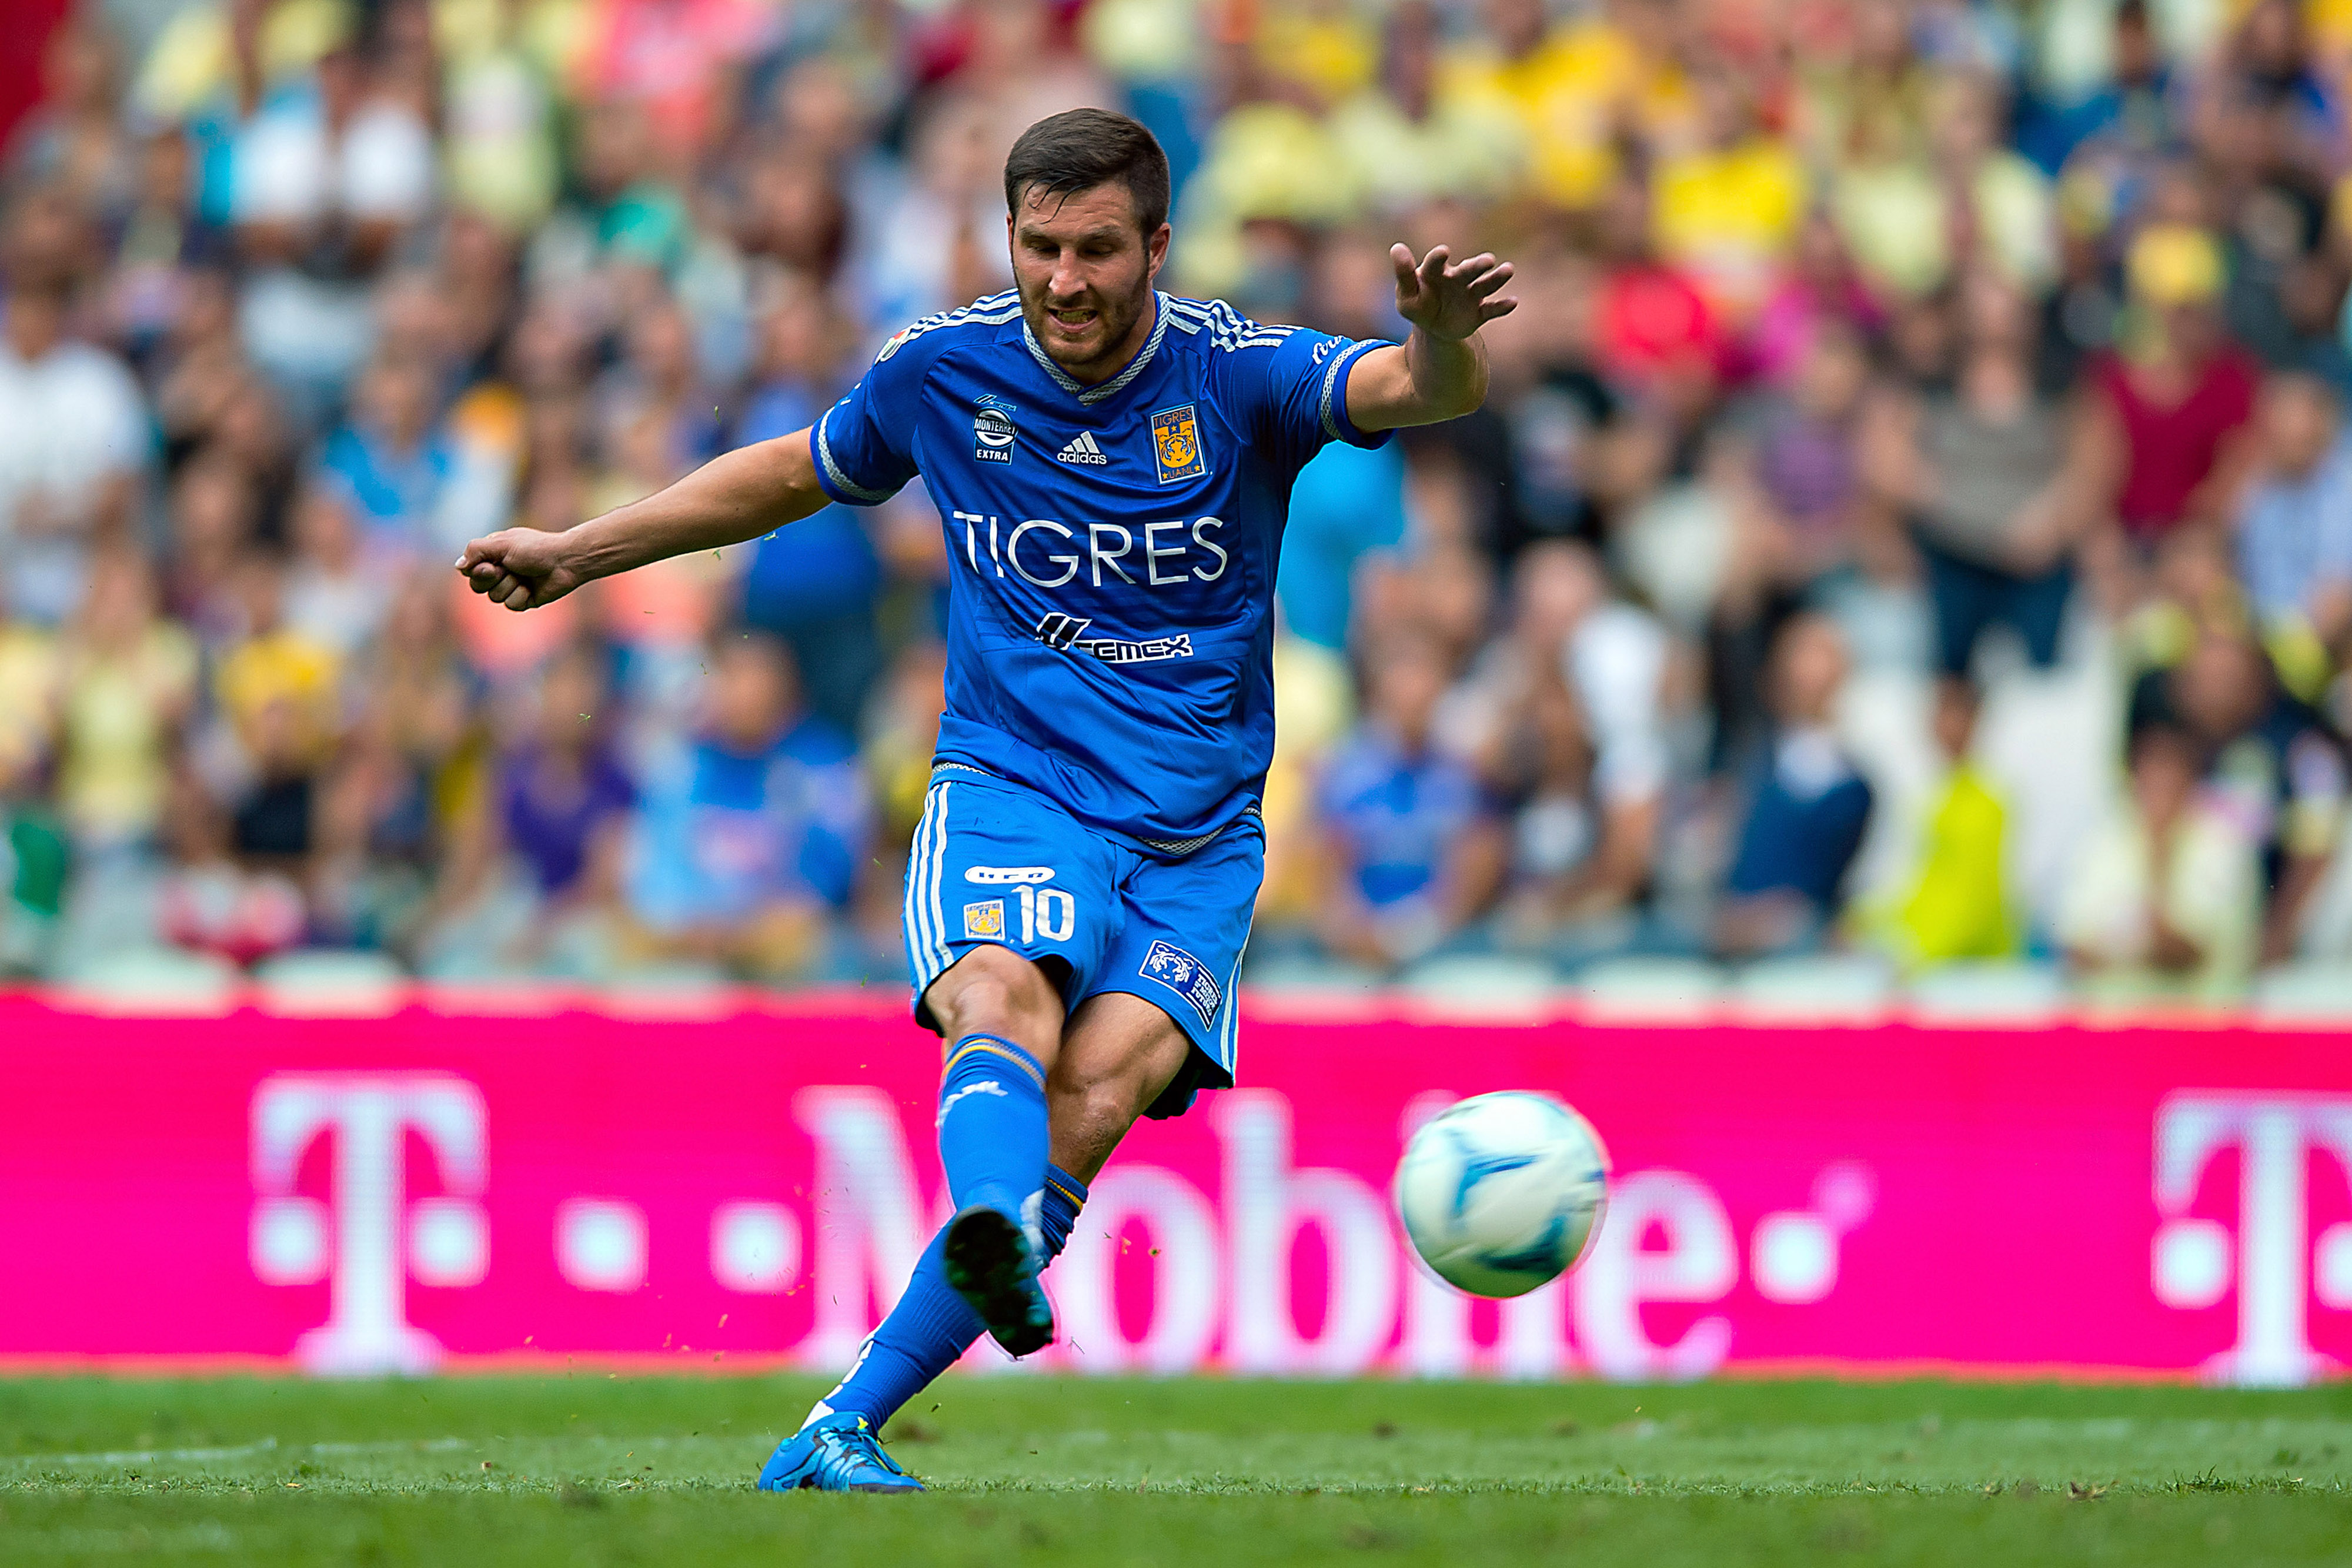 The Strange Case of Andre-Pierre Gignac: A French Forward Who Picked Liga MX Over Europe